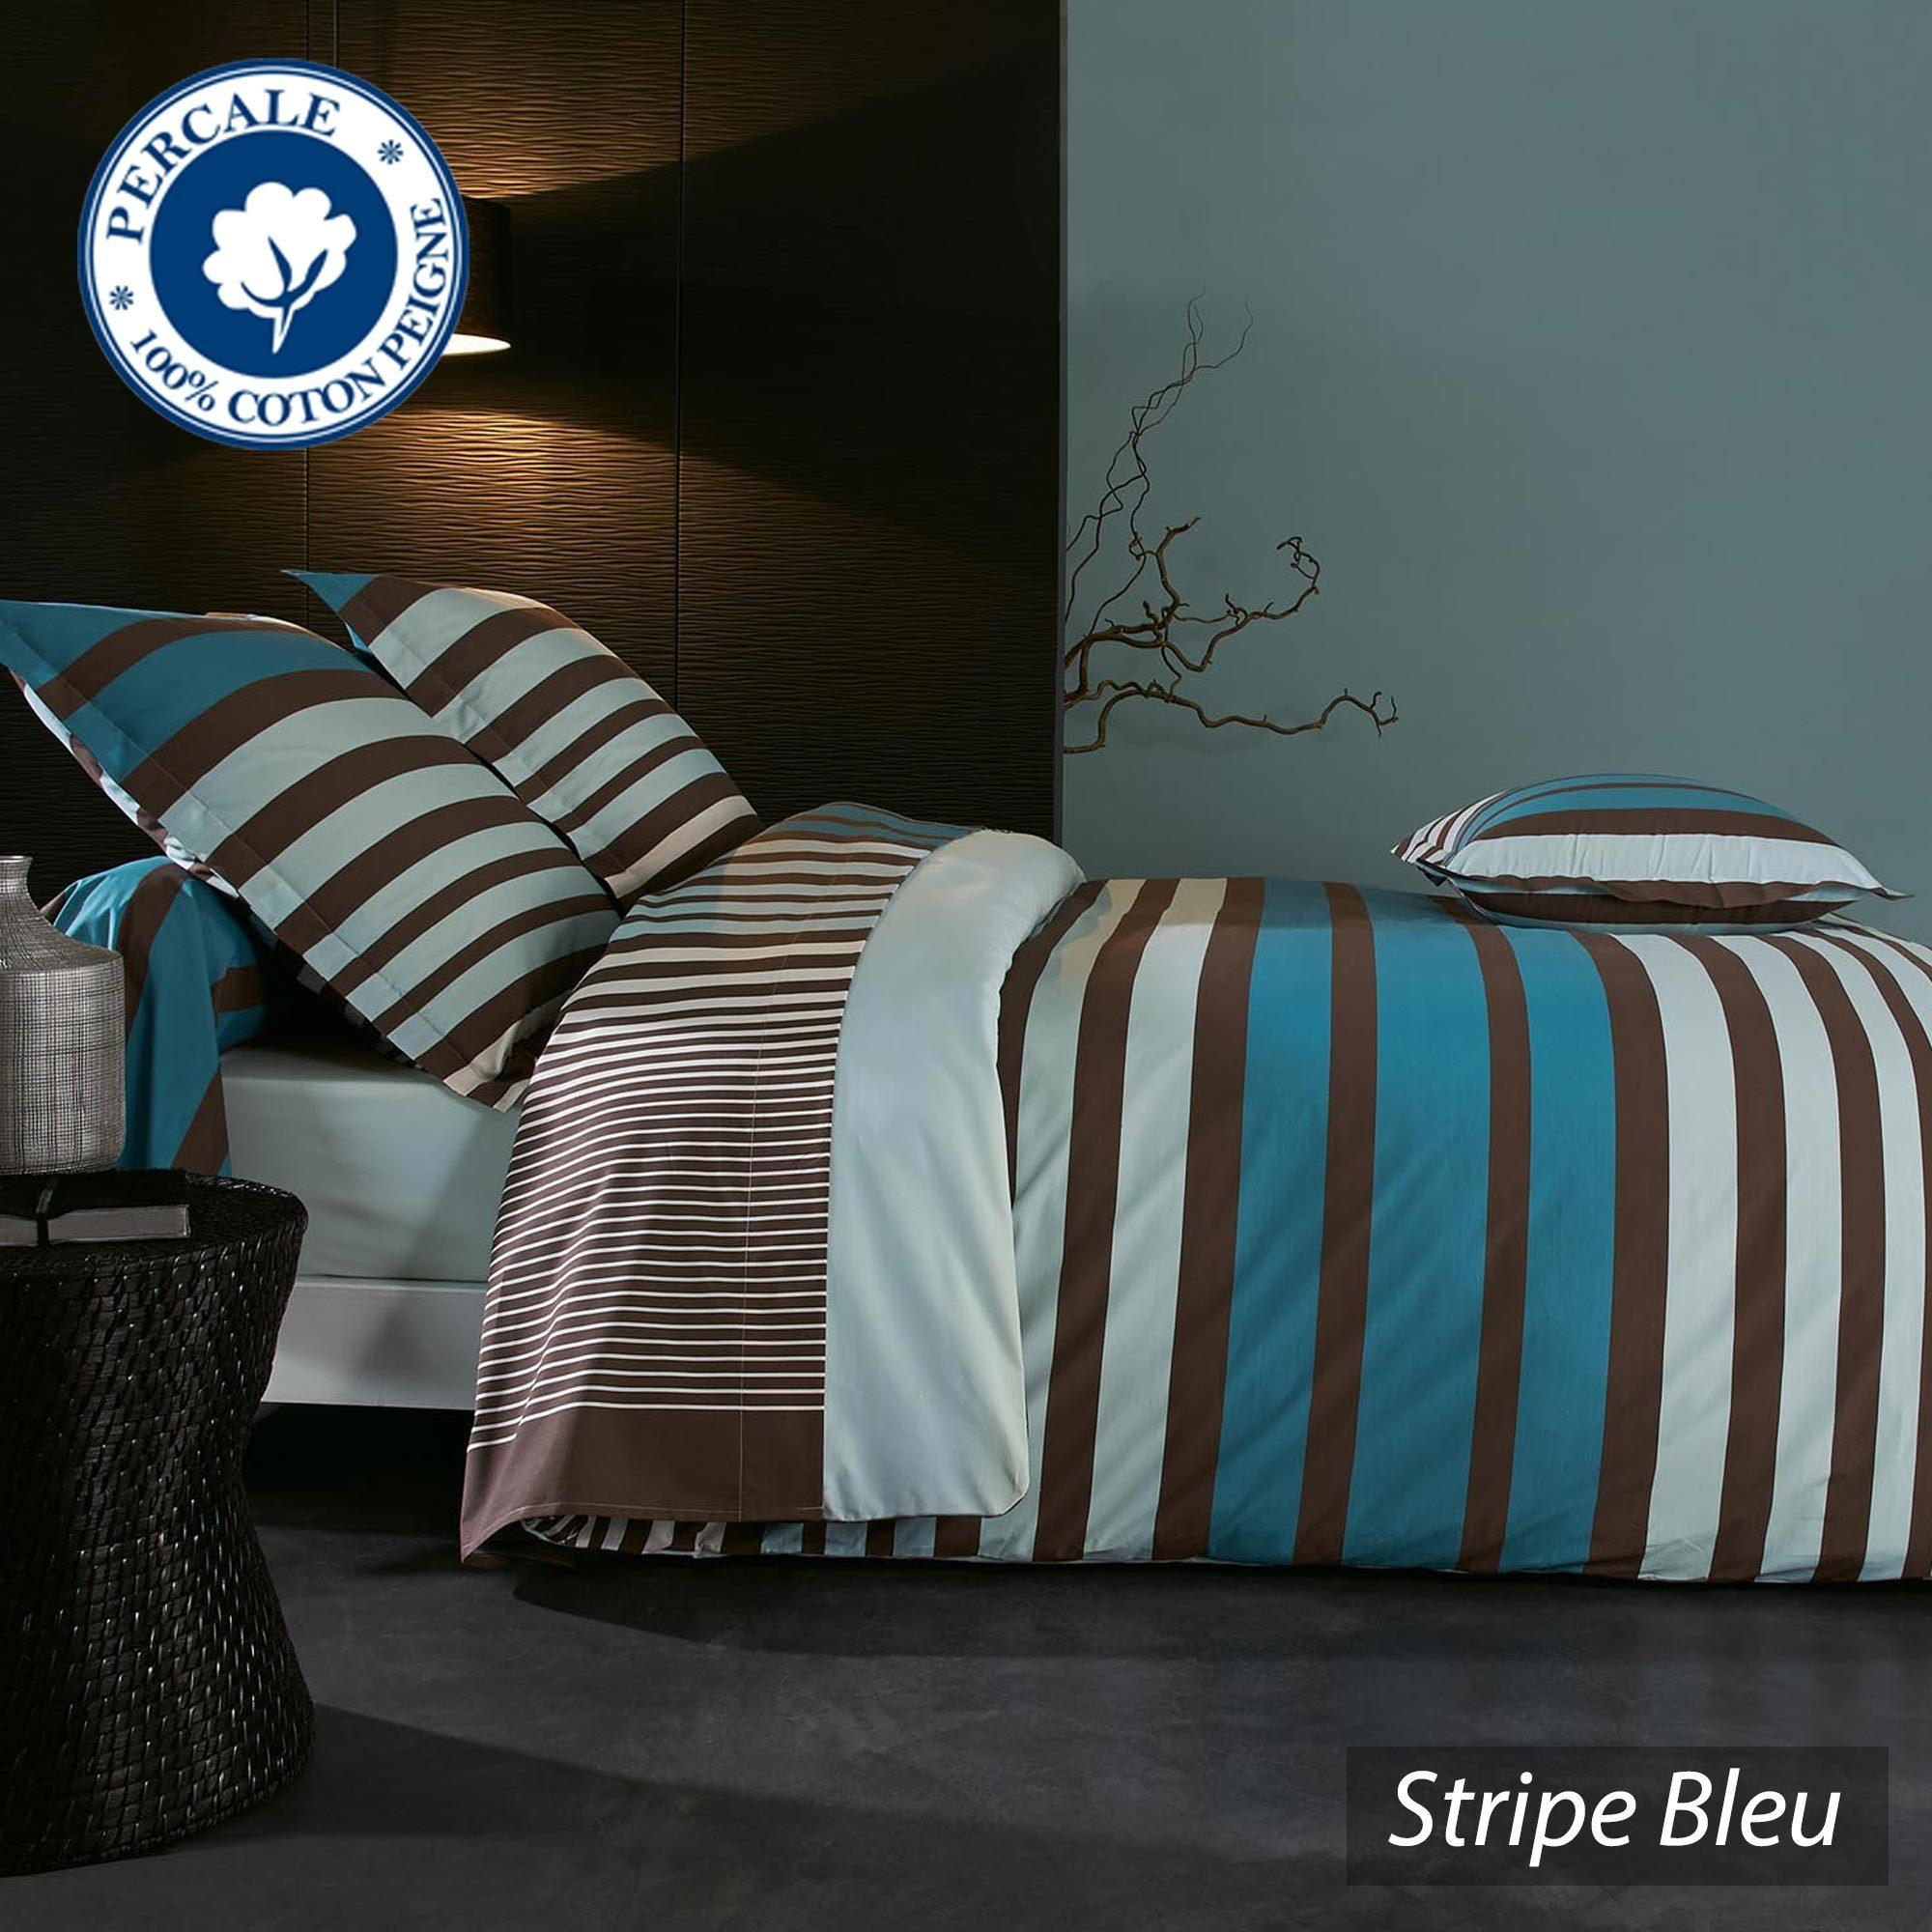 housse de couette percale pur coton peign 140x200 cm stripe bleu linnea vente de linge de maison. Black Bedroom Furniture Sets. Home Design Ideas